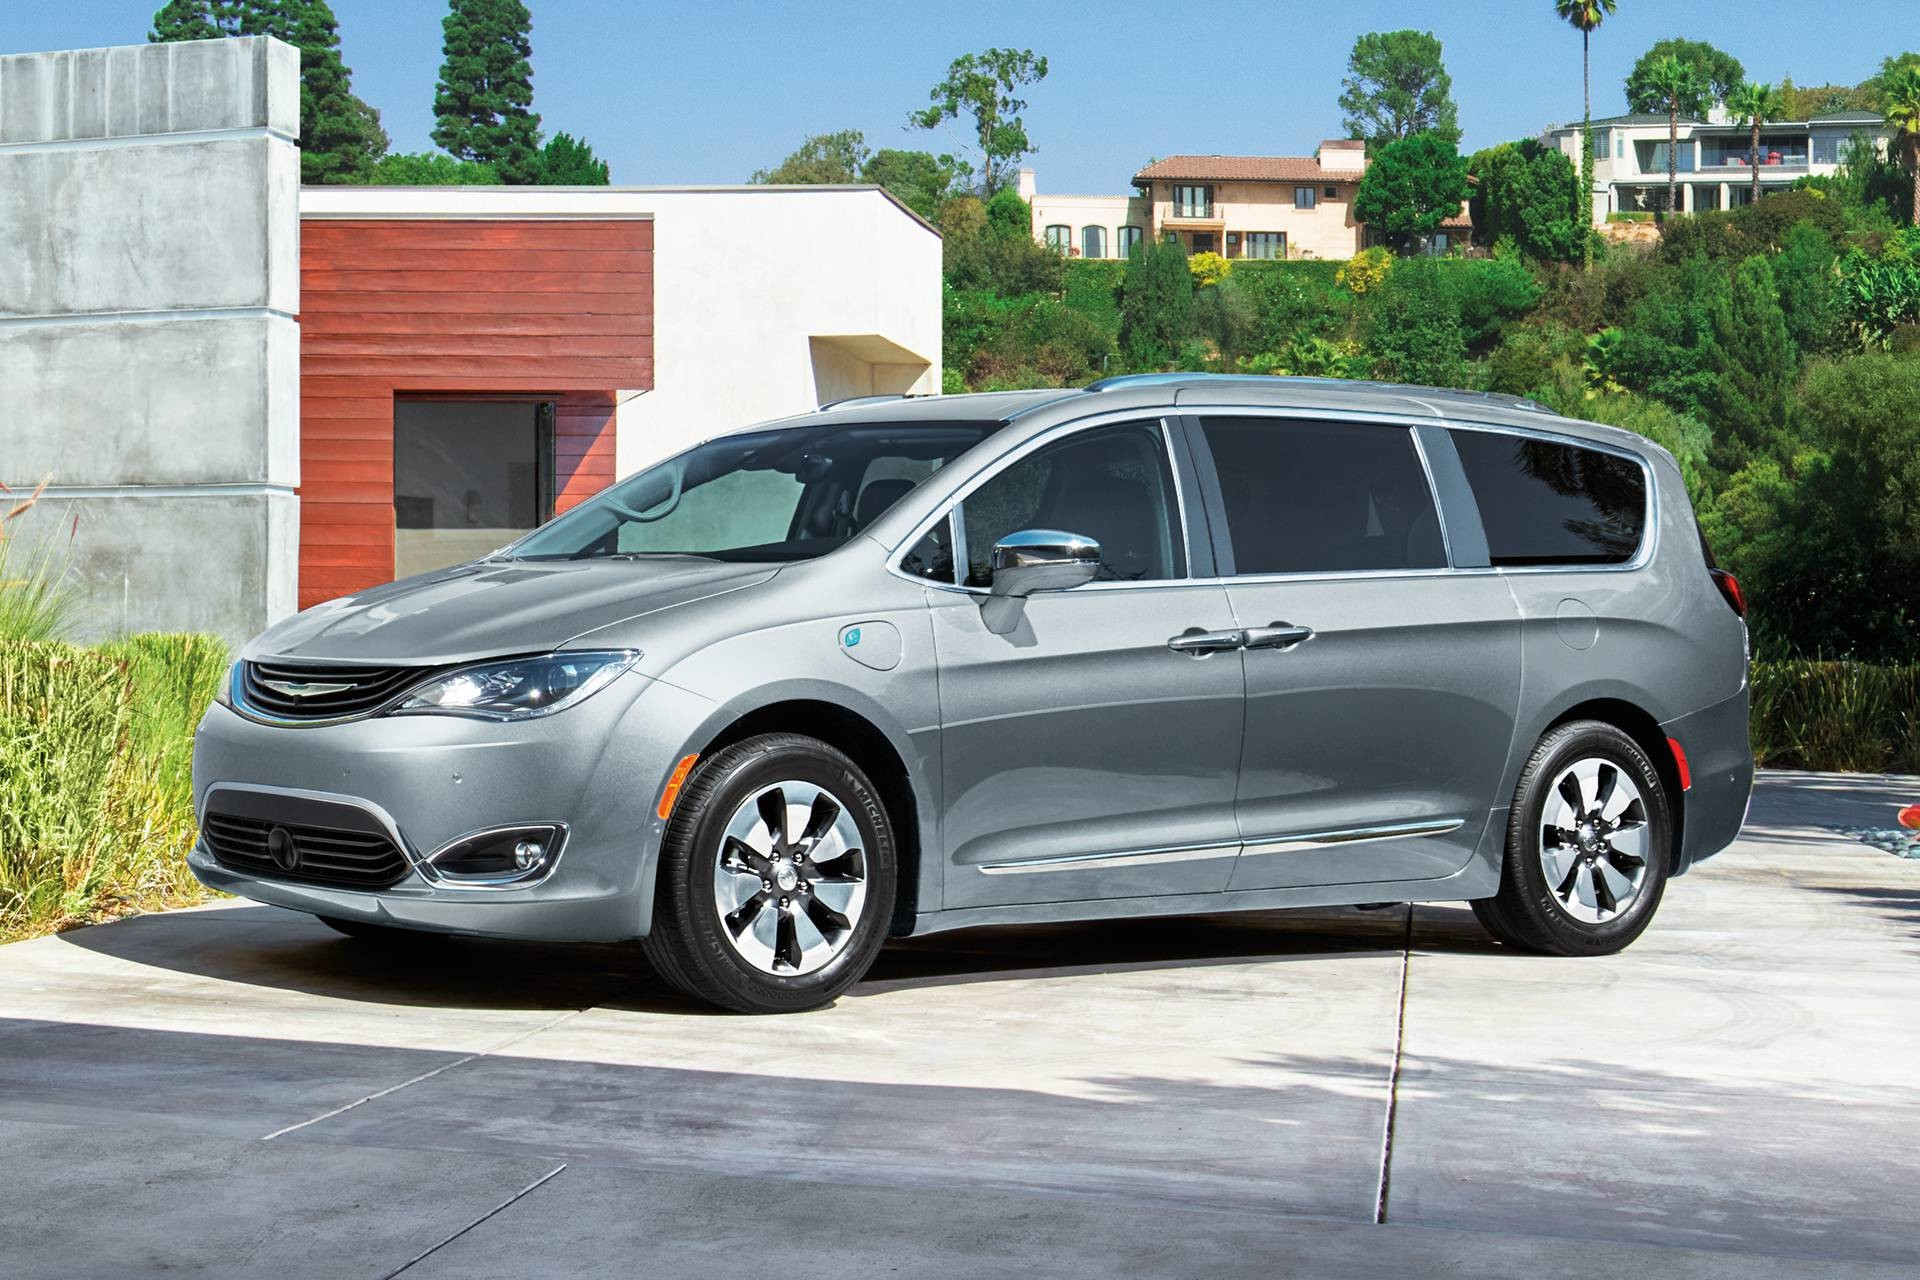 2019 Chrysler Pacifica Hybrid exterior shot of a Hybrid charging at a home, shown in silver